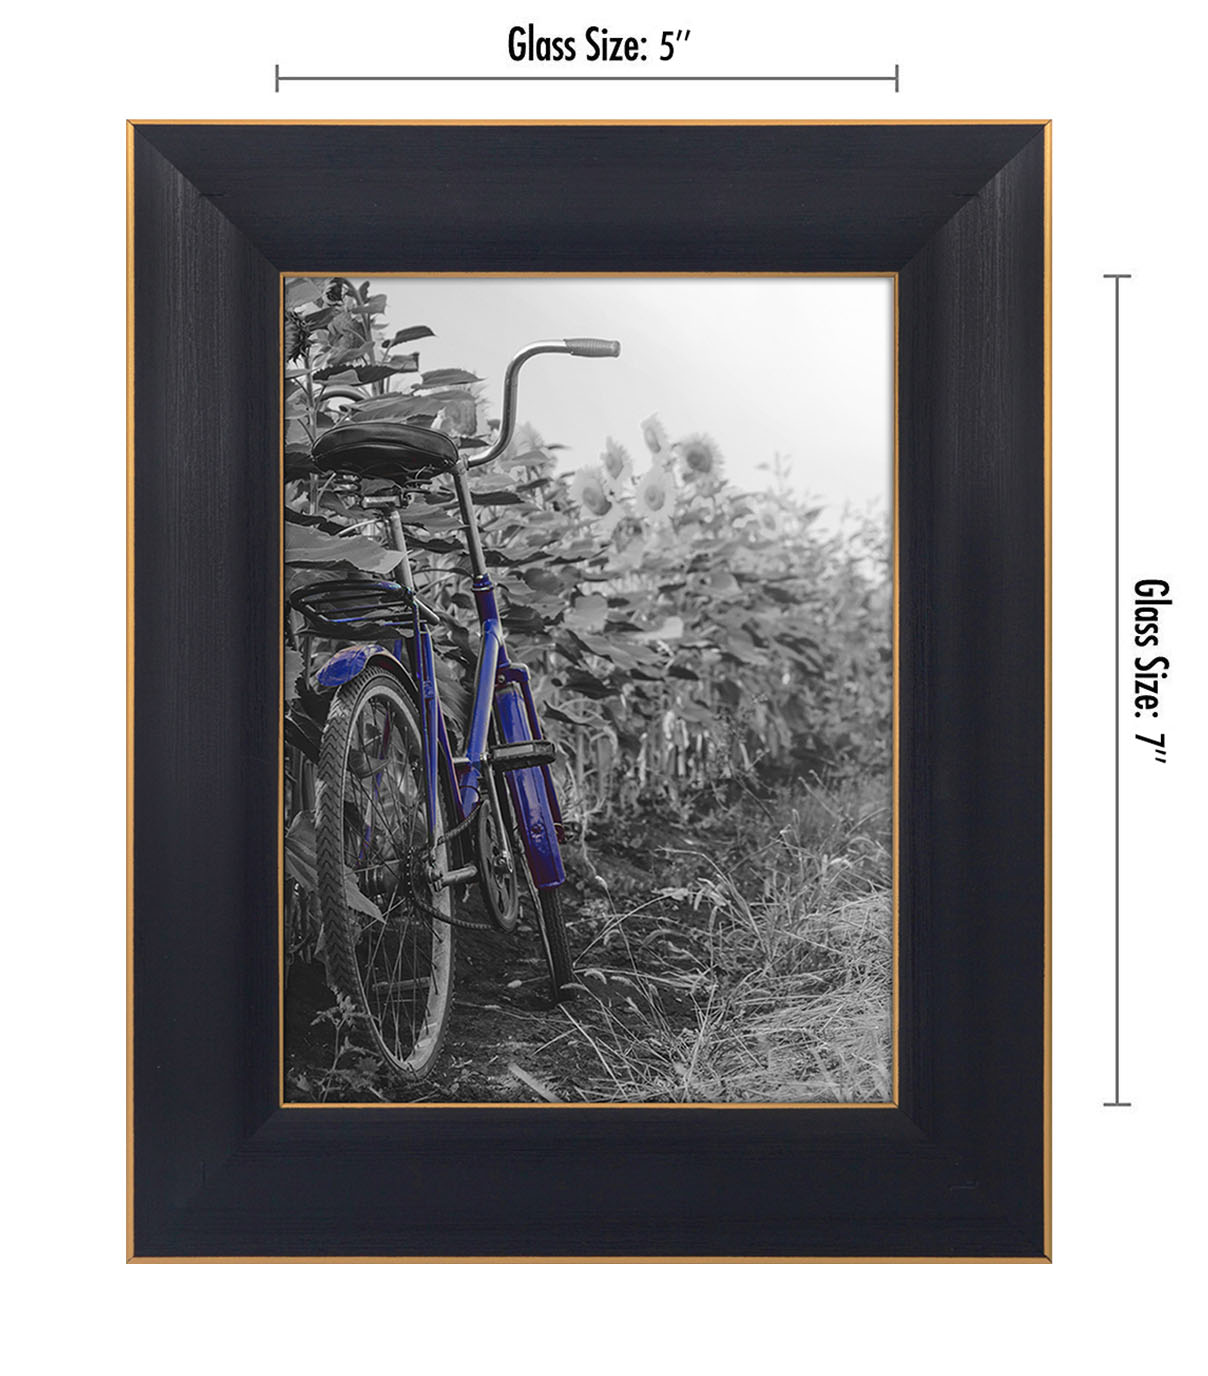 miniature 10 - Americanflat Picture Frame 4x6 5x7 8x10 (2) Pack Rustic Wood Wall or Tabletop